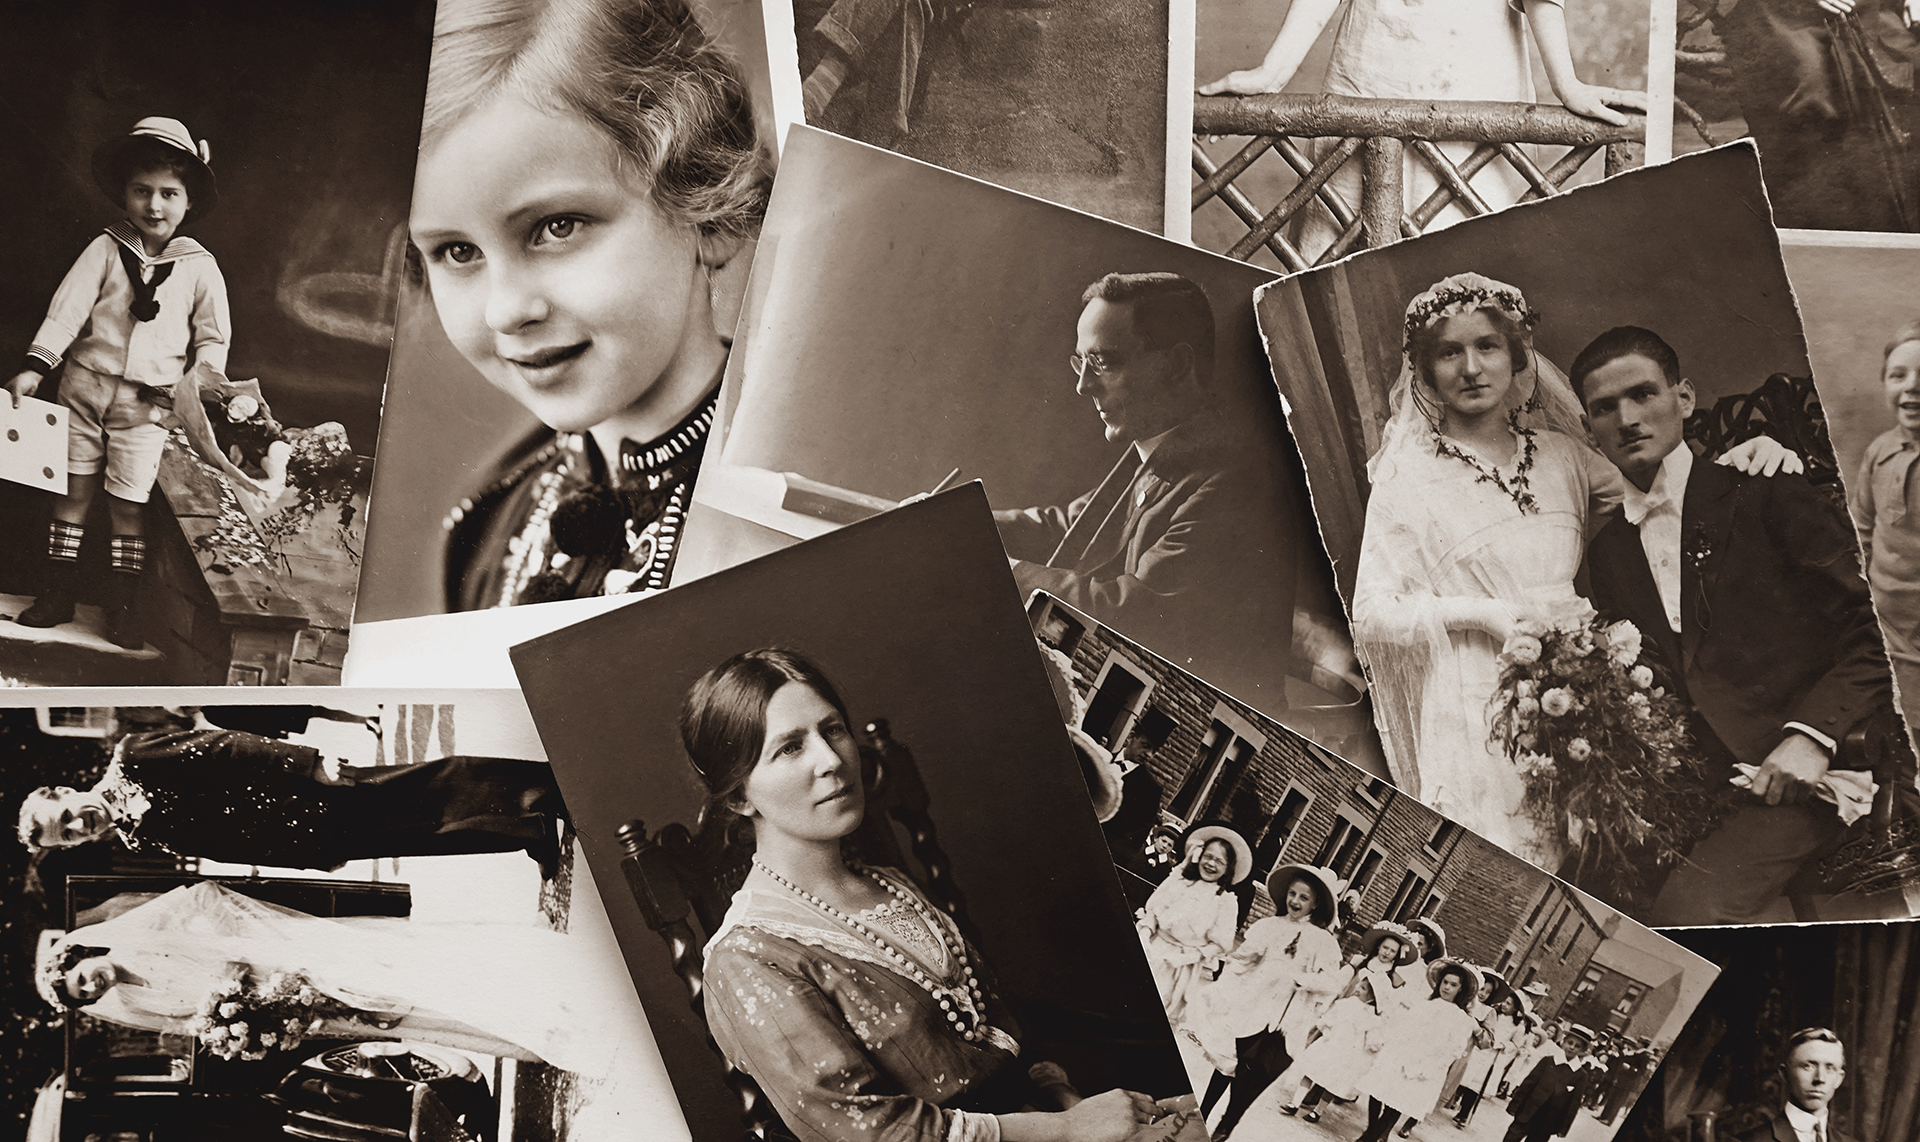 Storing Old Photos and Preserving Precious Memories - Preparing old photos for memories